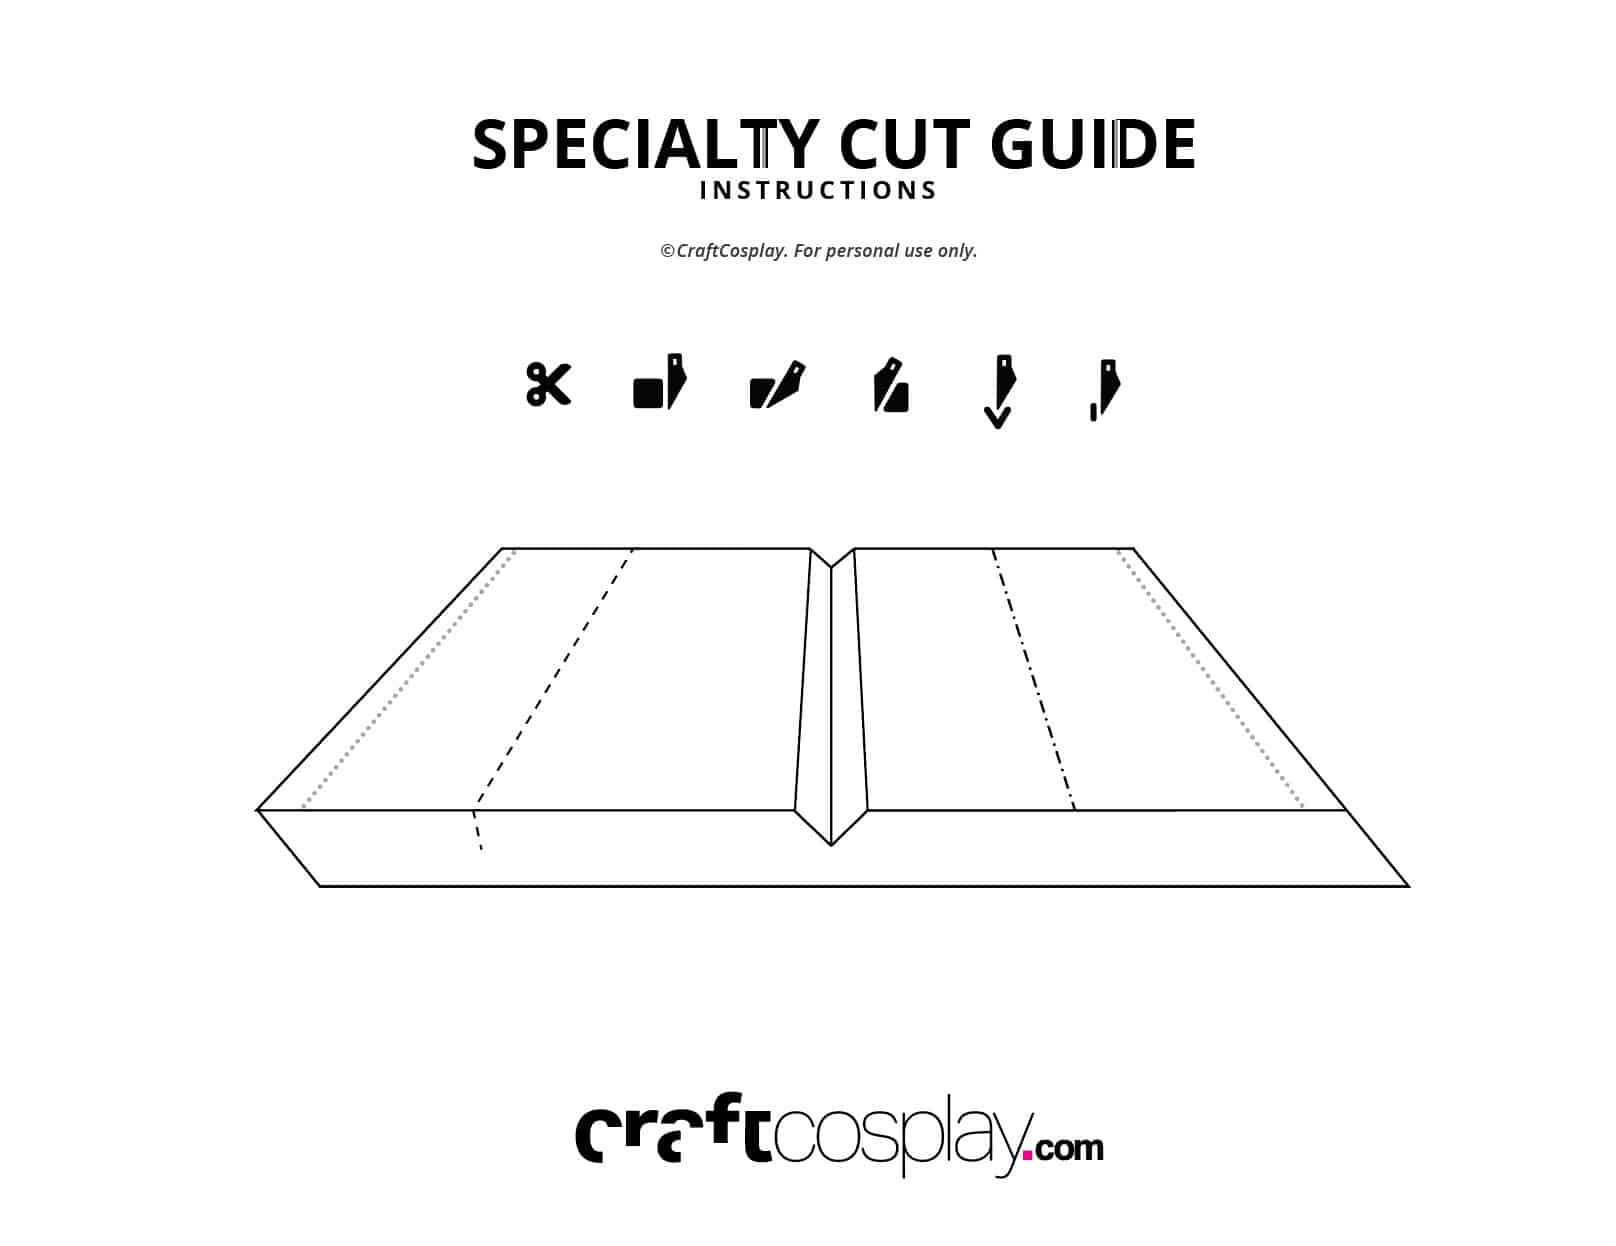 CraftCosplay Specialty Cut Guide